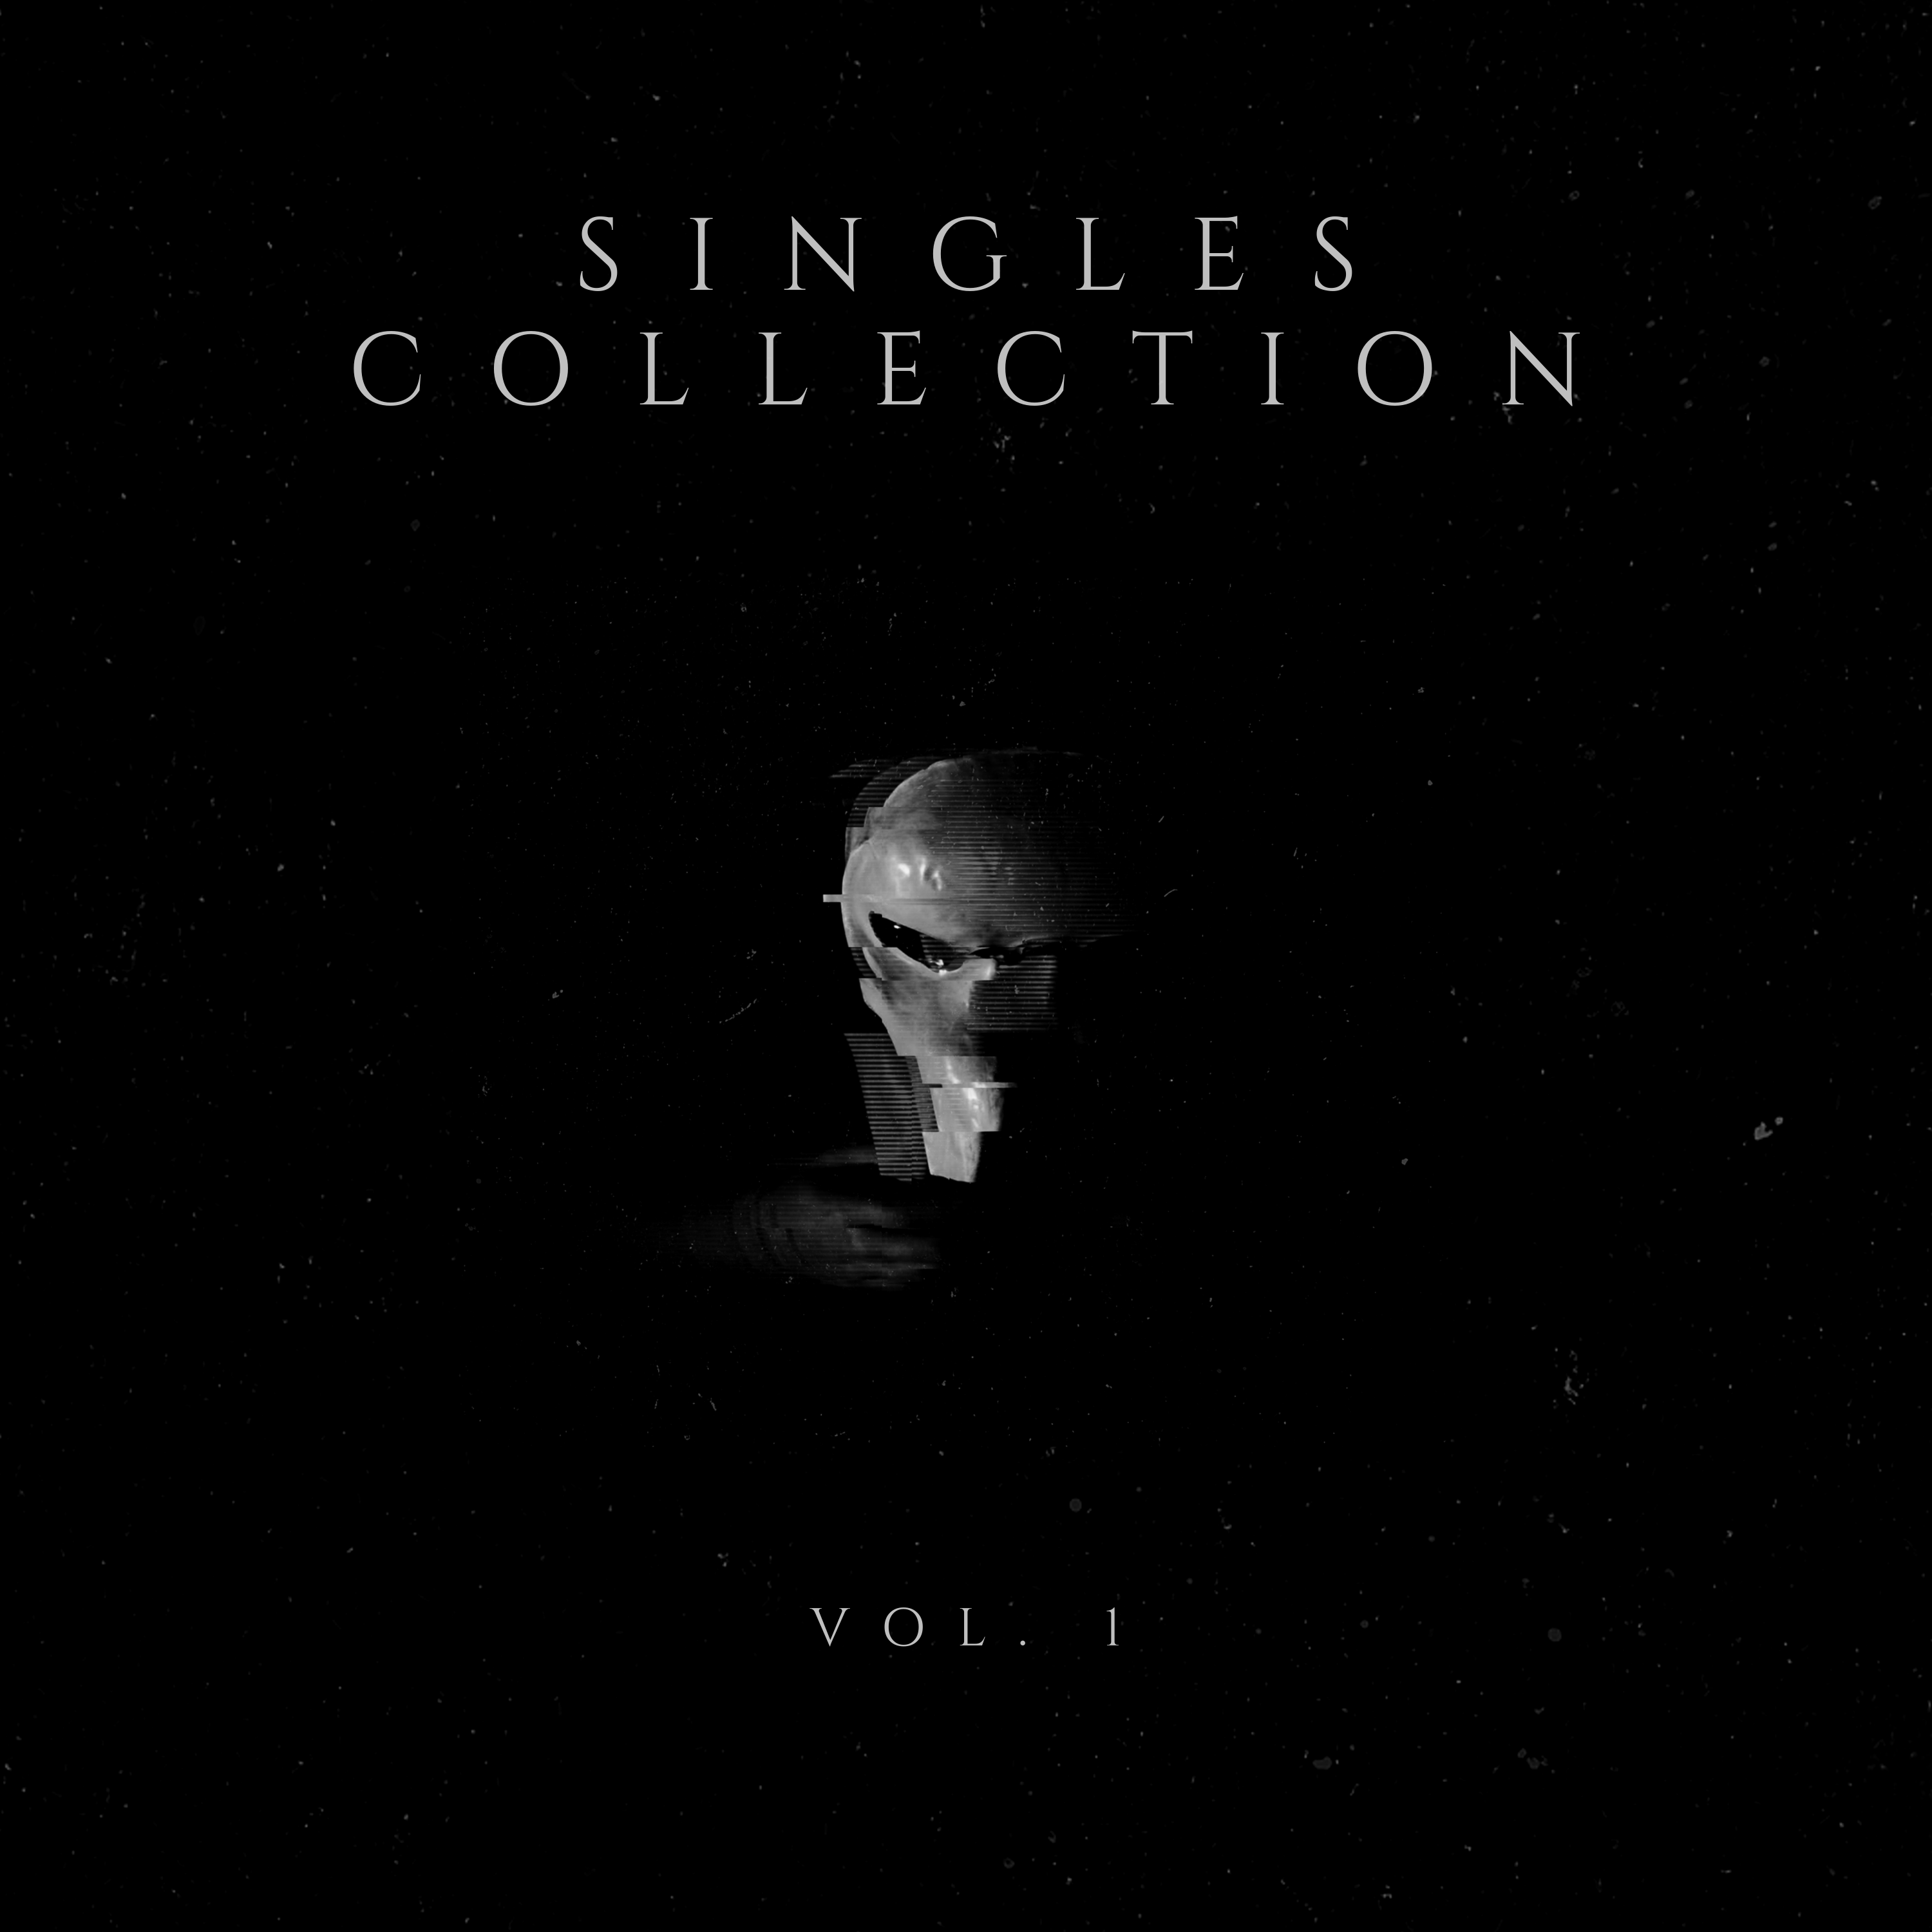 Hozho - Singles Collection Vol. 1